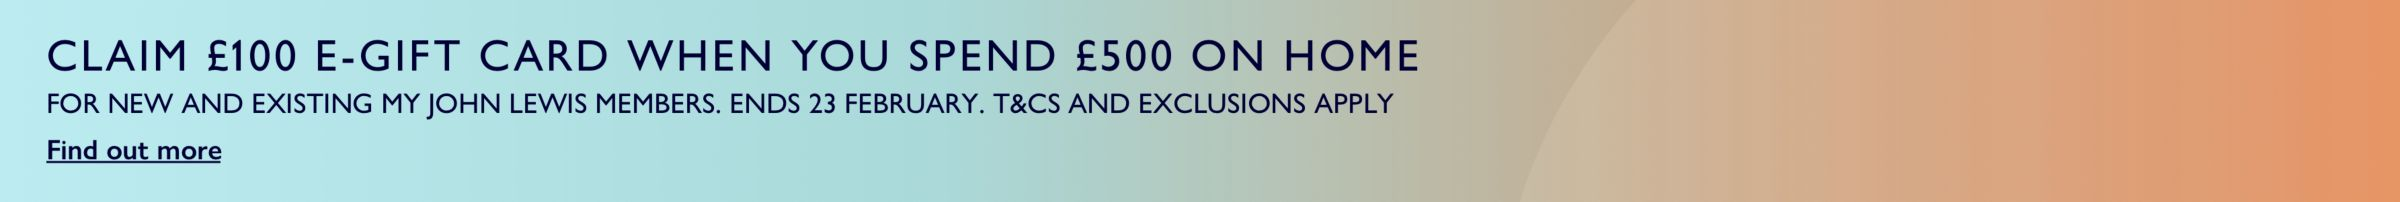 Claim £100 e-gift card when you spend $500 on home. For new and existing my John Lewis members. T&Cs and exclusions apply. Ends 23 February